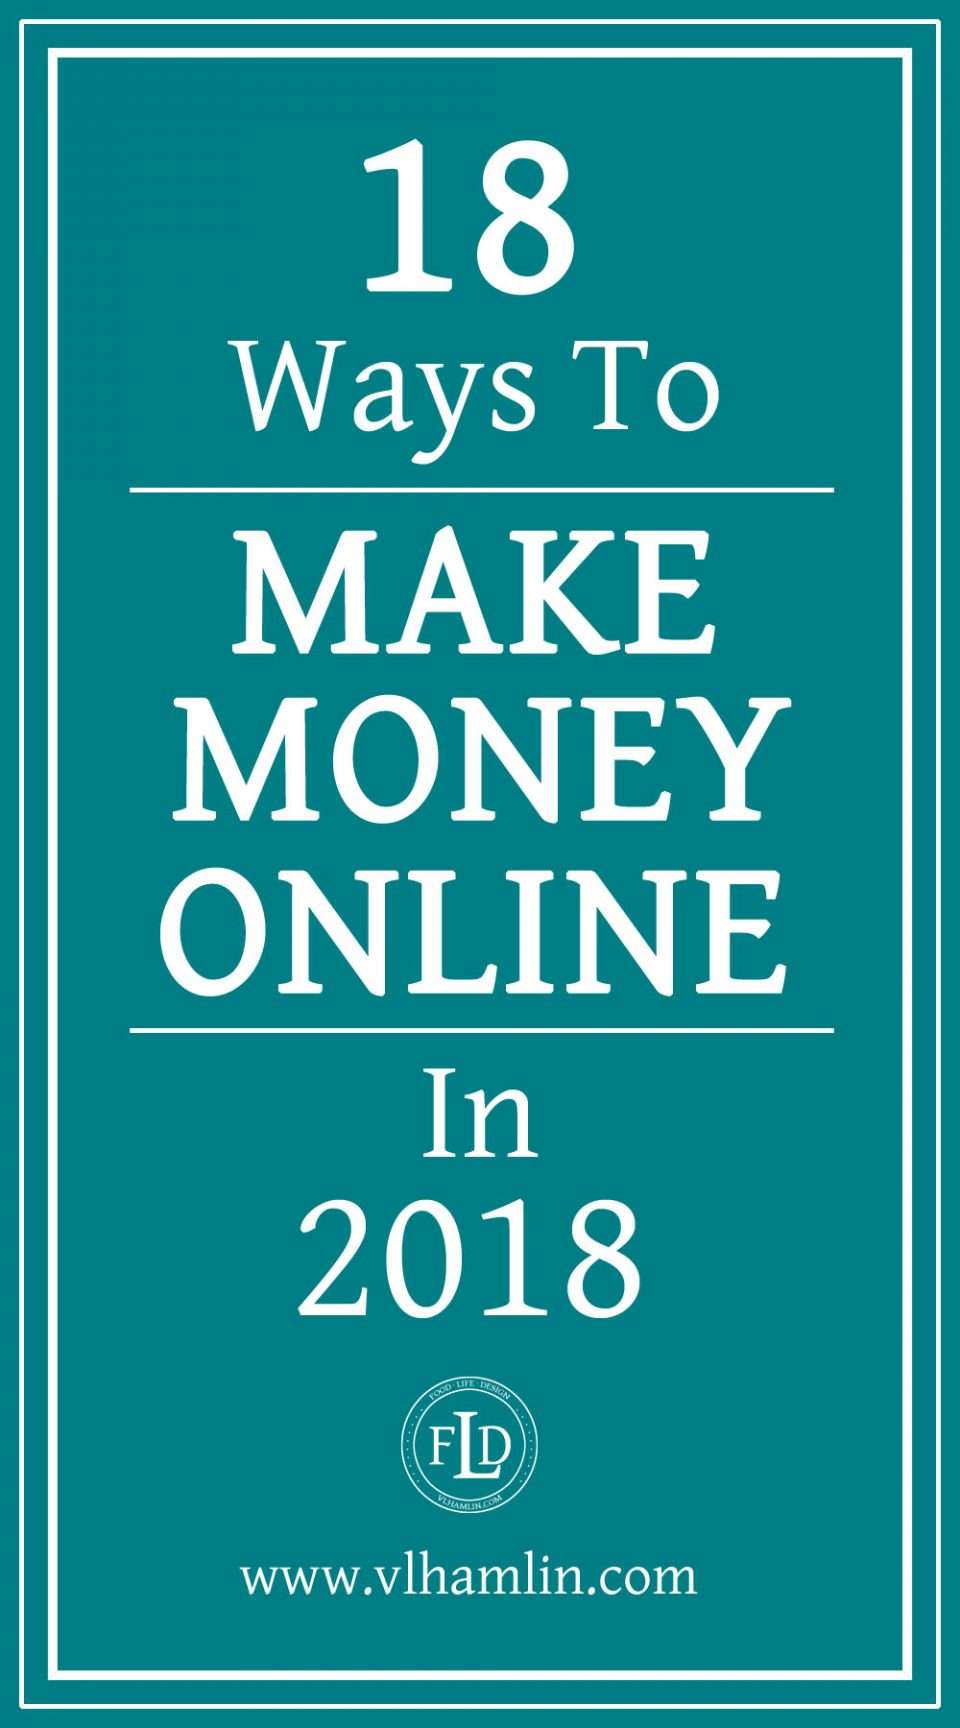 18 Ways to Make Money Online in 2018